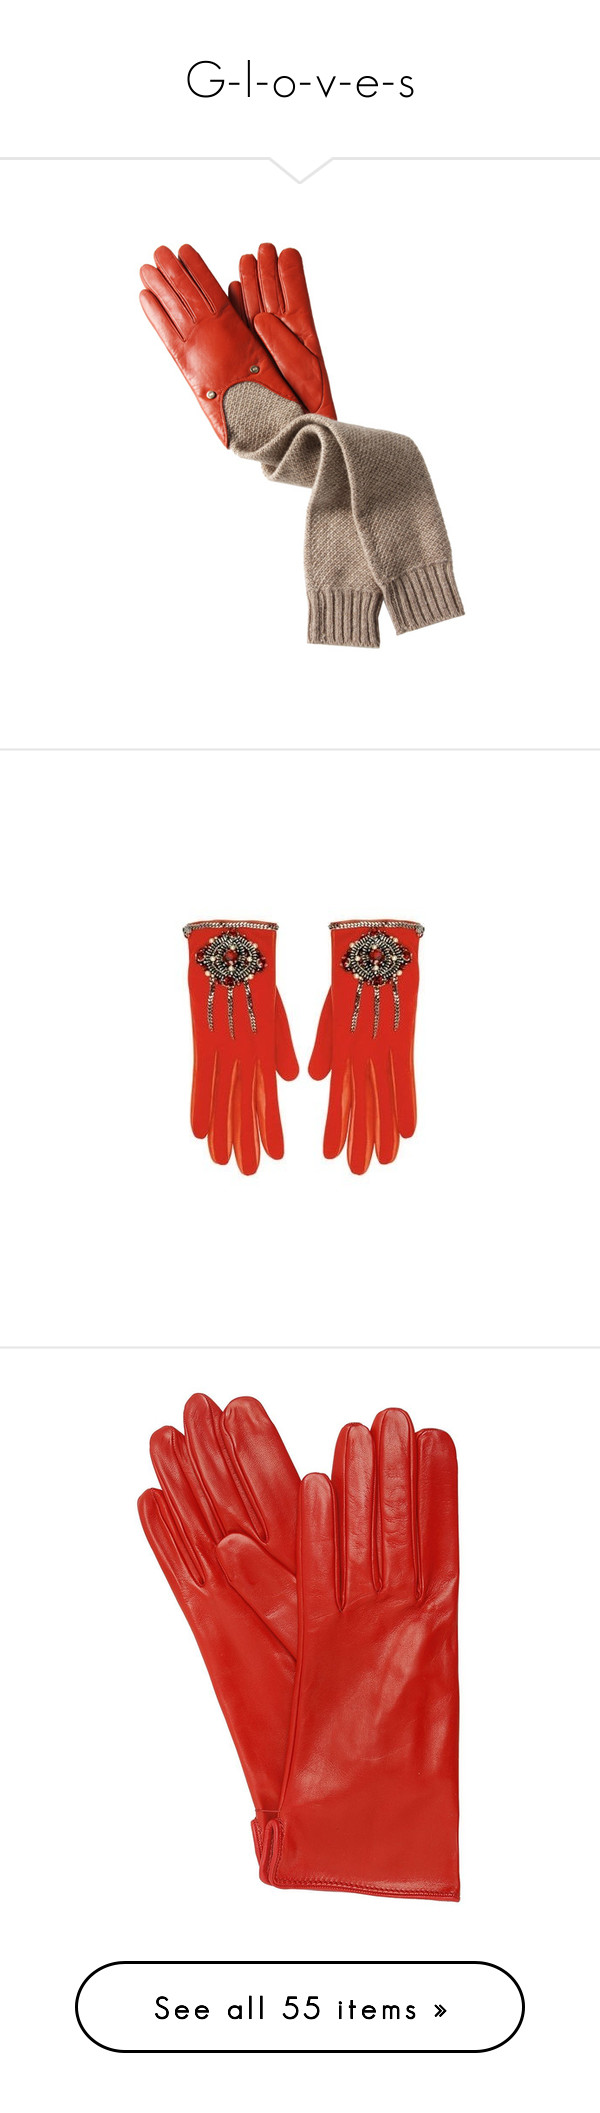 """""""G-l-o-v-e-s"""" by lorika-borika on Polyvore featuring accessories, gloves, women, opera gloves, diane von furstenberg gloves, diane von furstenberg, elbow length gloves, long gloves, chanel и chanel gloves"""